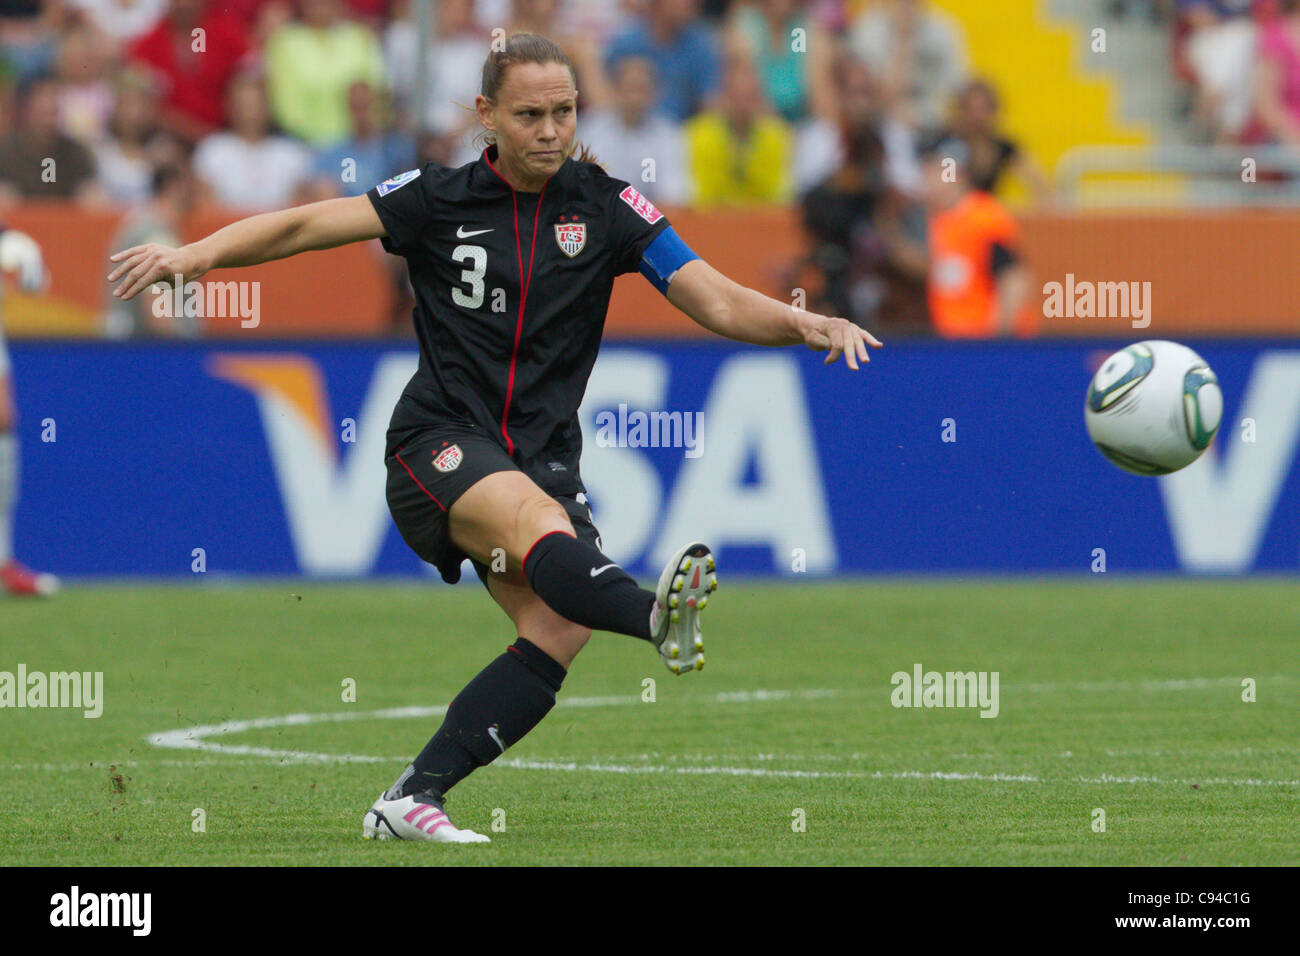 United States team captain Christie Rampone kicks the ball during a Women's World Cup quarterfinal soccer match - Stock Image